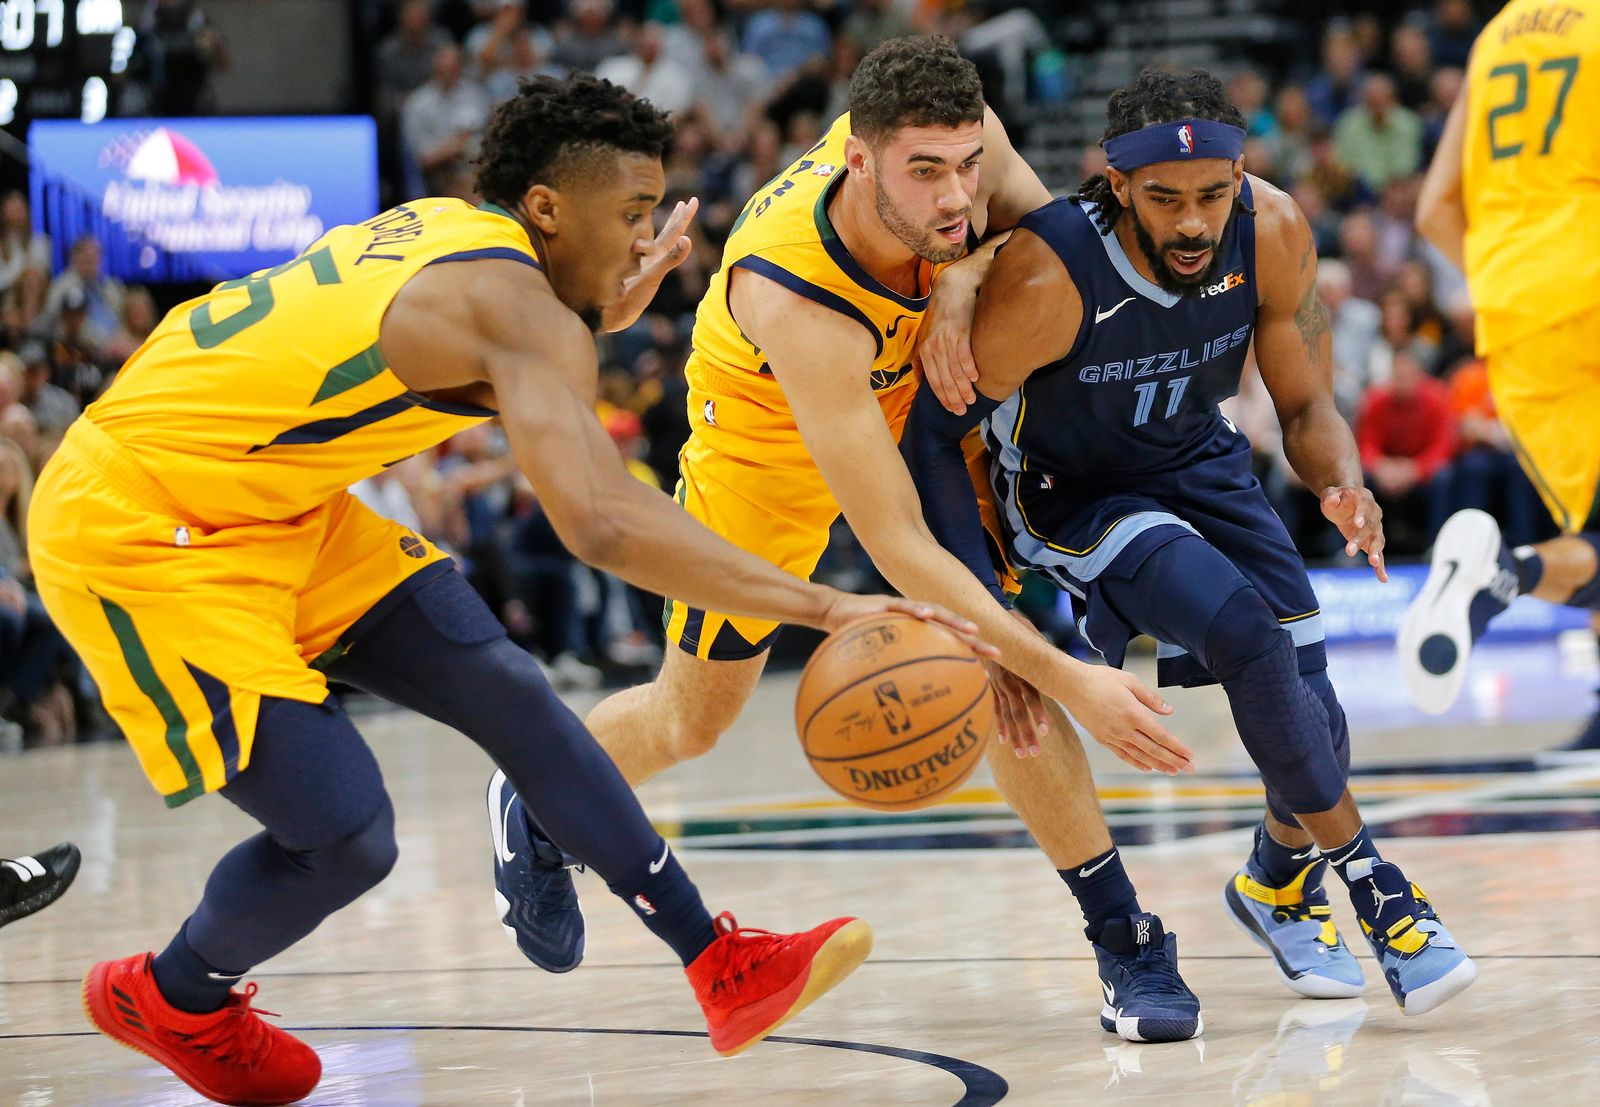 Utah Jazz's Donovan Mitchell, left, steals the ball as teammate Georges Niang, center, defends Memphis Grizzlies guard Mike Conley (11) in the first half of an NBA basketball game, Monday, Oct. 22, 2018, in Salt Lake City. (AP Photo/Rick Bowmer)